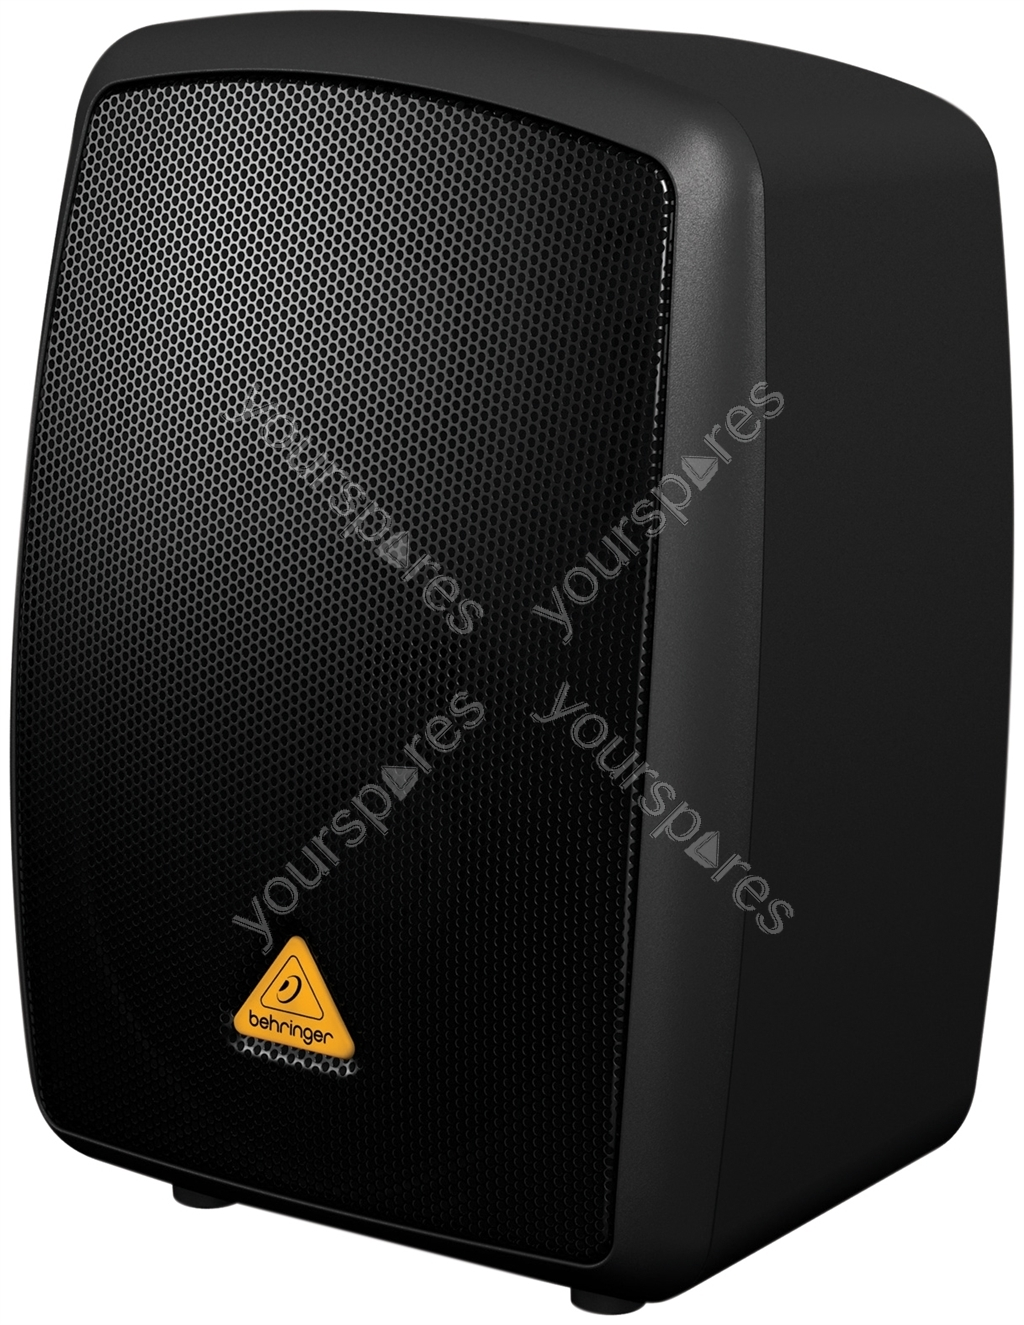 behringer mpa40bt europort portable pa system with bluetooth zb808 by behringer. Black Bedroom Furniture Sets. Home Design Ideas